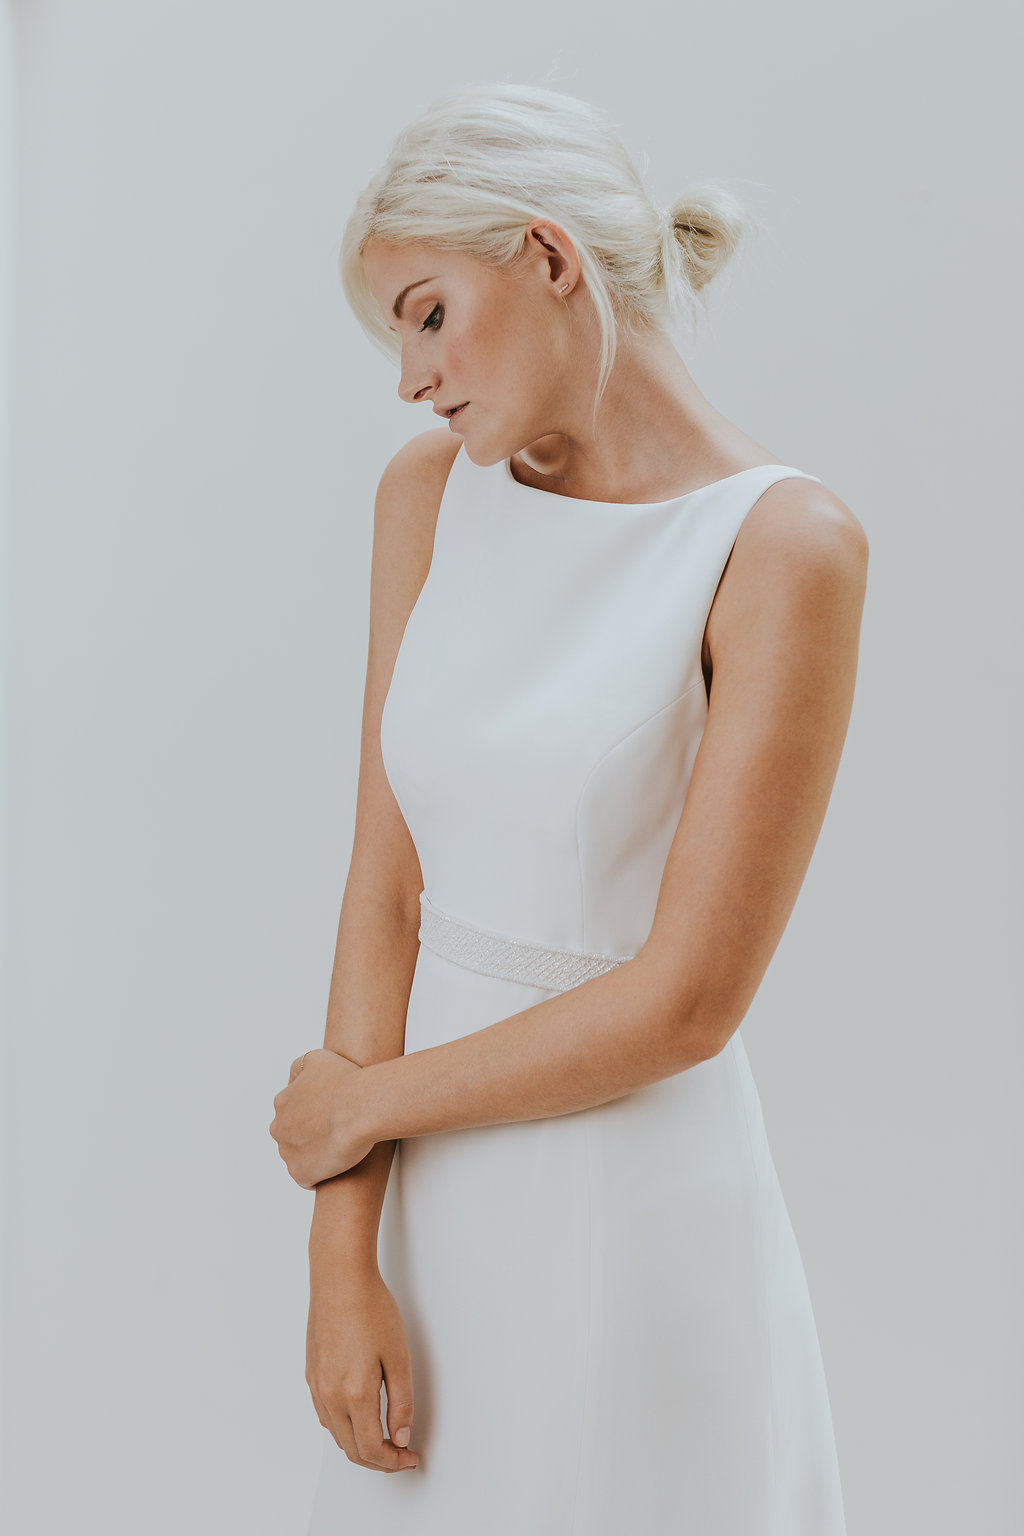 Charlotte Simpson Bridal   Made To Order Dresses   Bridal Collection ...